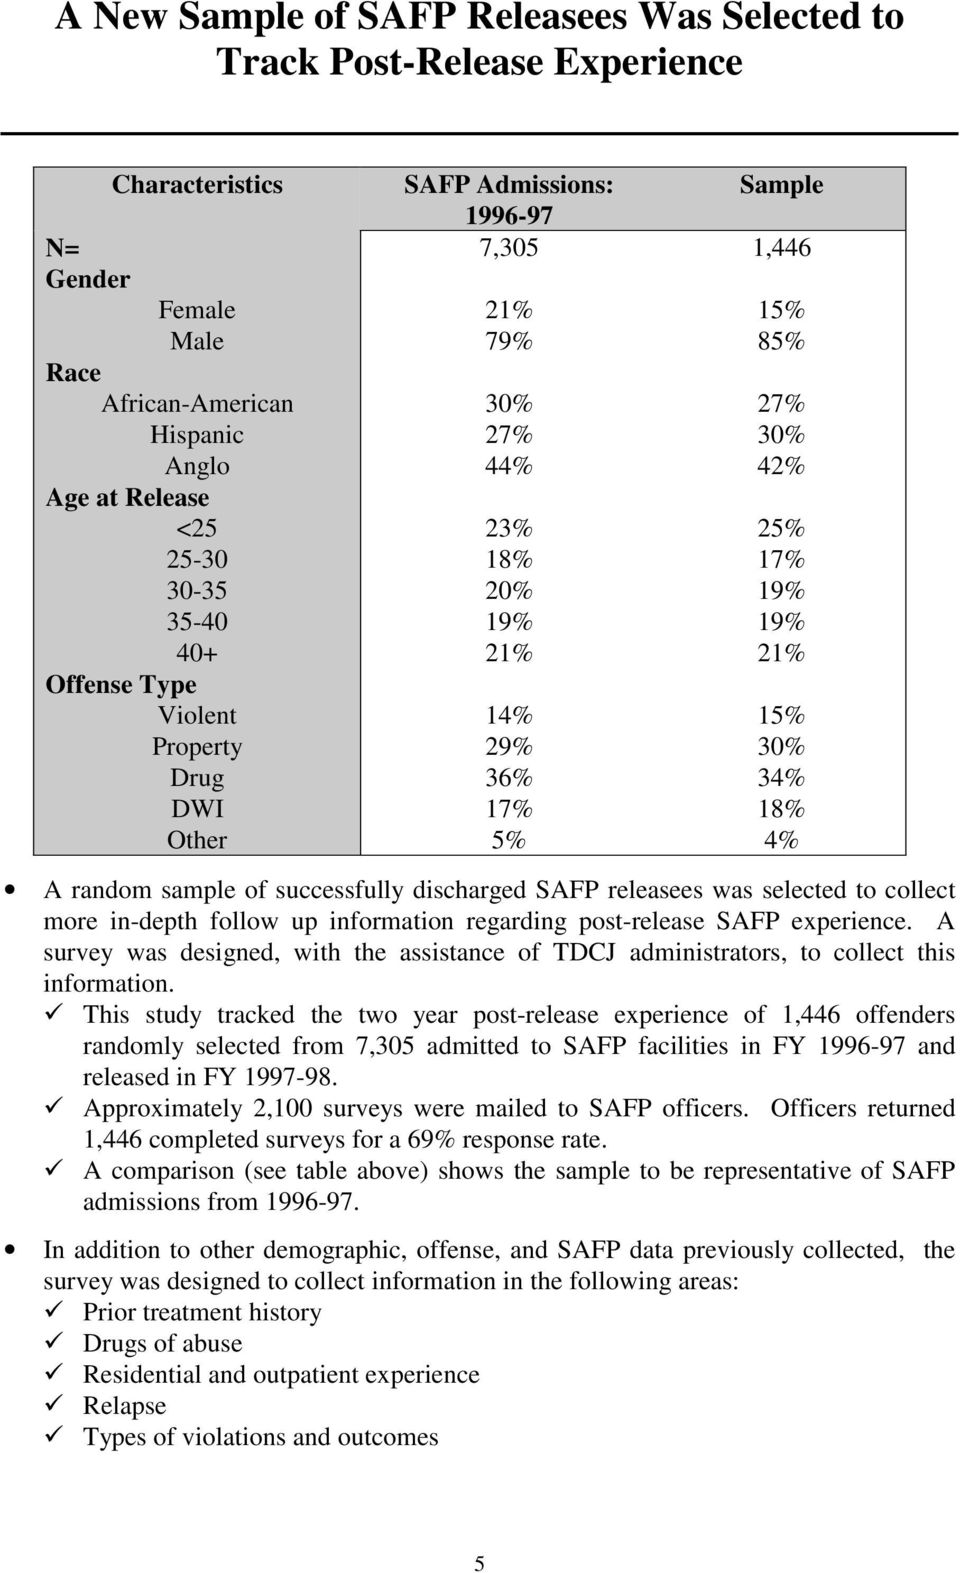 4% A random sample of successfully discharged SAFP releasees was selected to collect more in-depth follow up information regarding post-release SAFP experience.